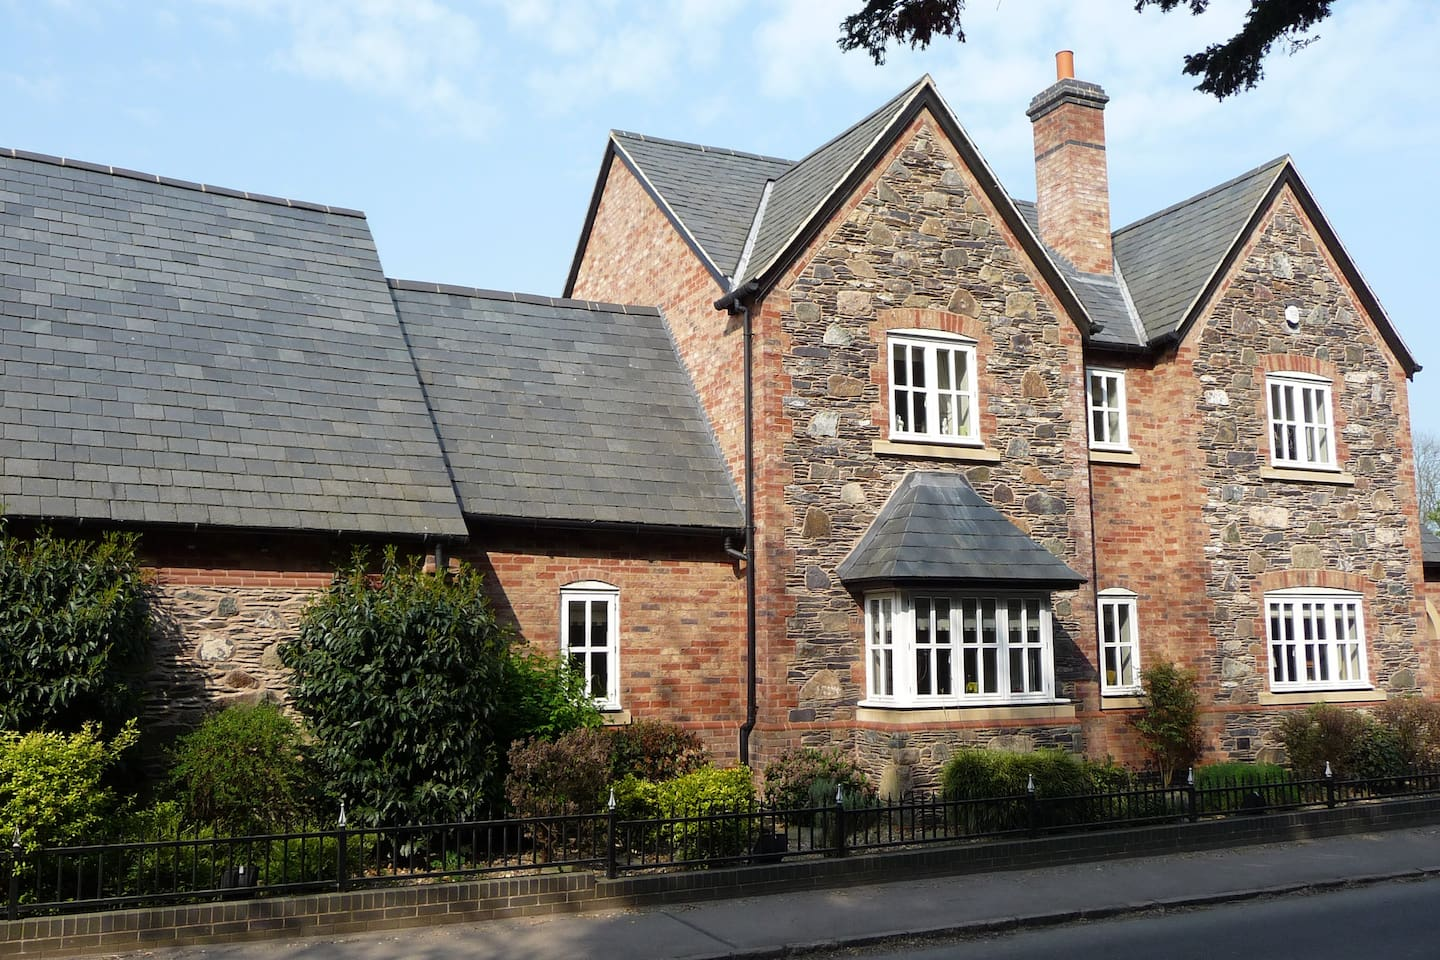 Keepers Lodge in Charnwood Forest